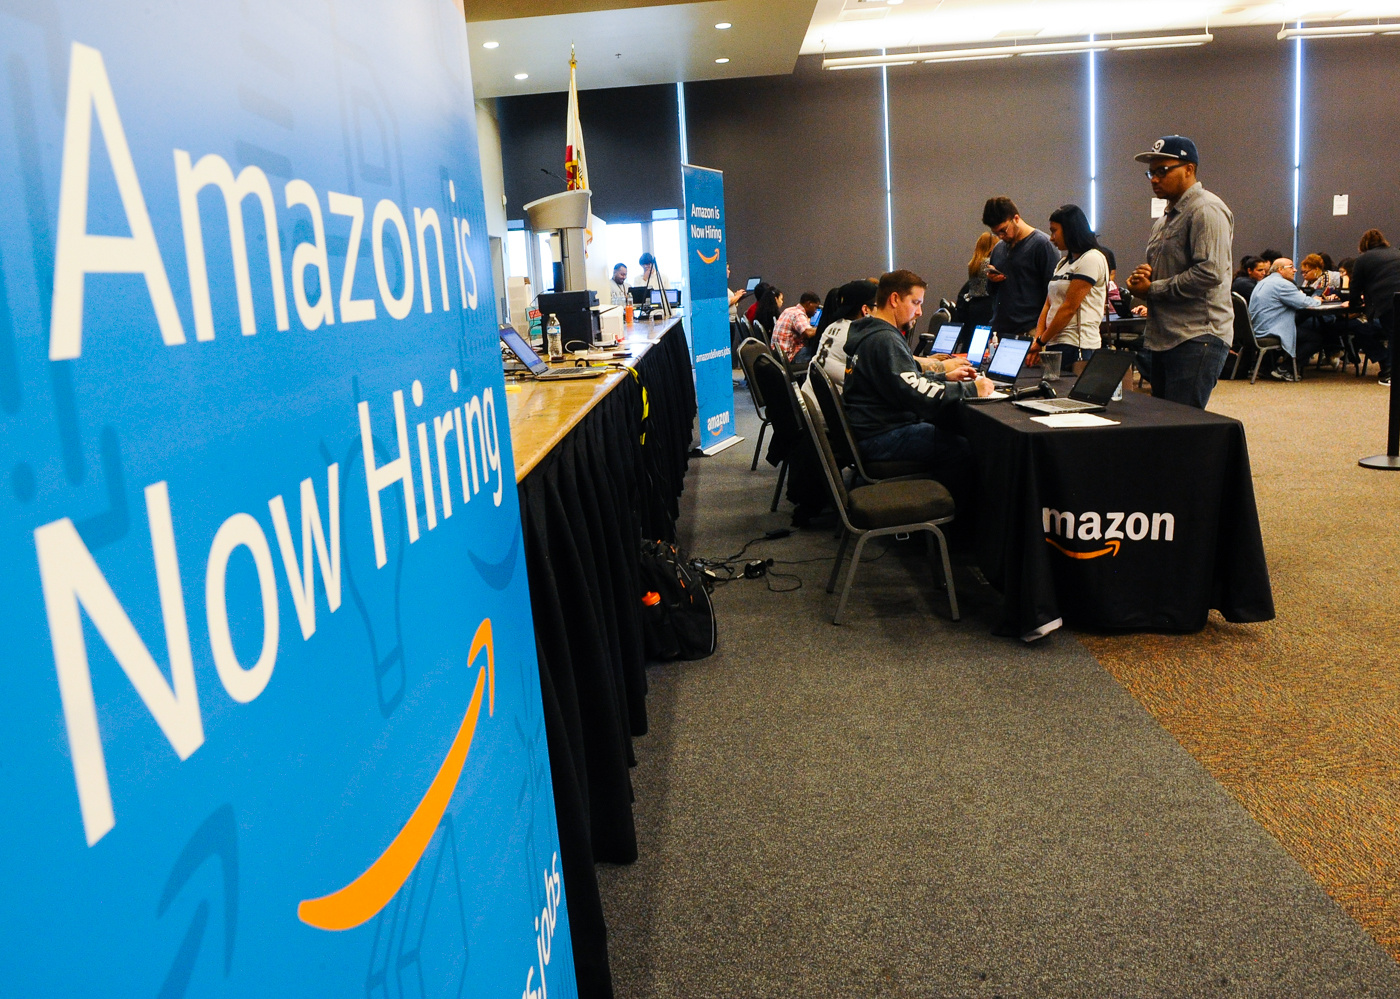 Amazon expands US workforce by 100,000